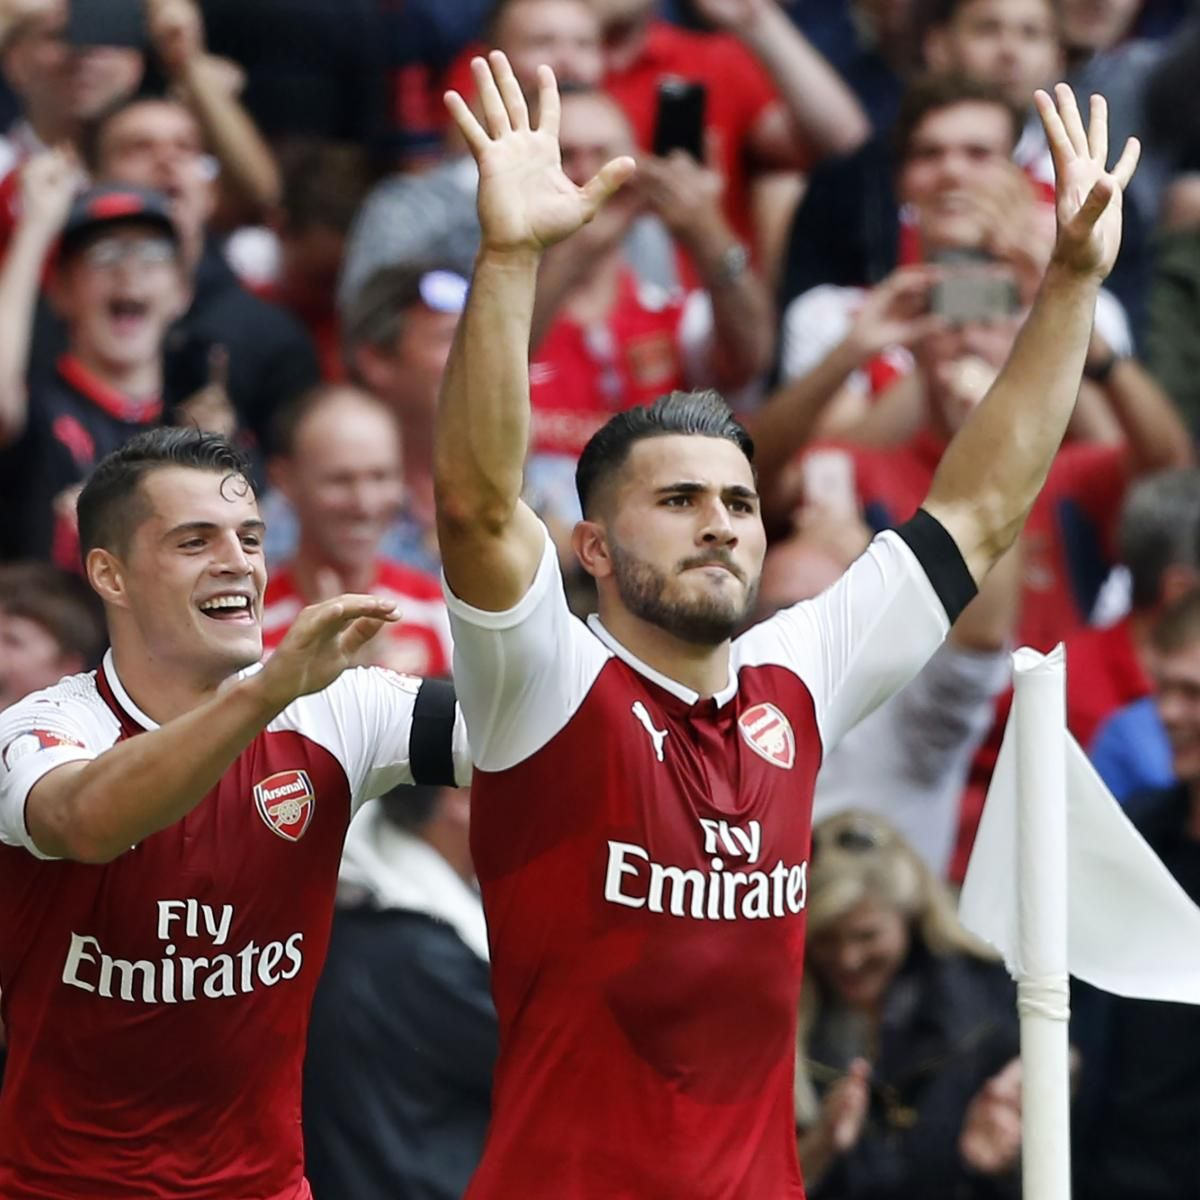 Arsenal Defeat Chelsea to Win 2017 English FA Community Shield After Shootout - Bleacher Report